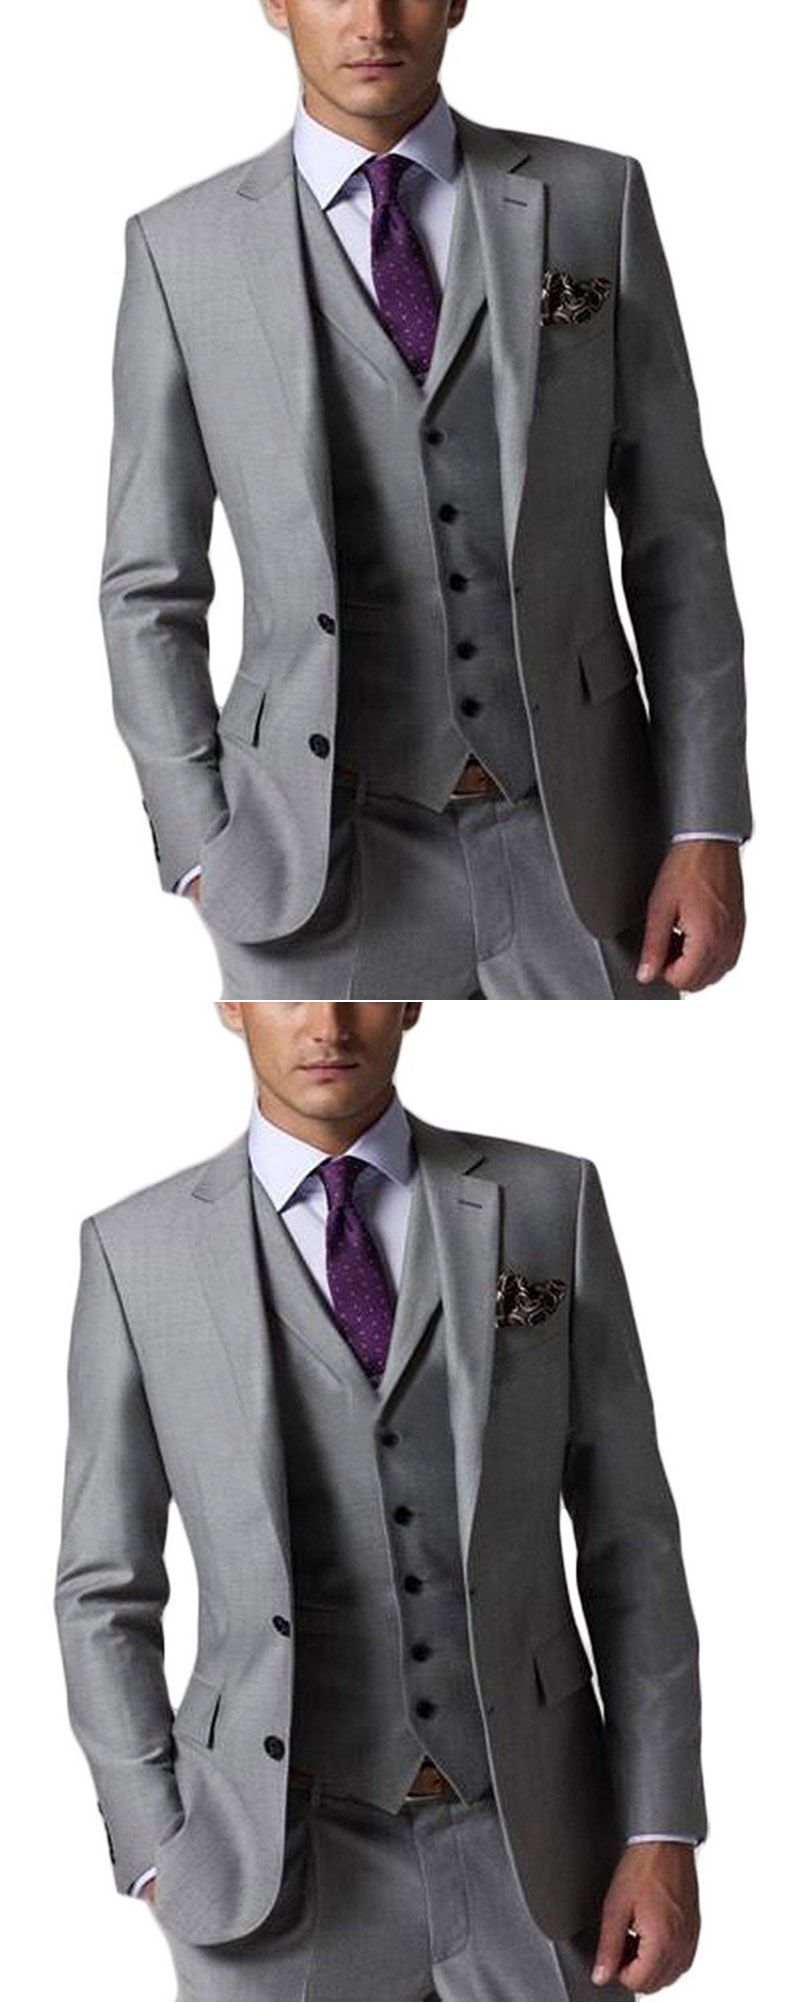 Grey business suit for men pieces groom wedding suits